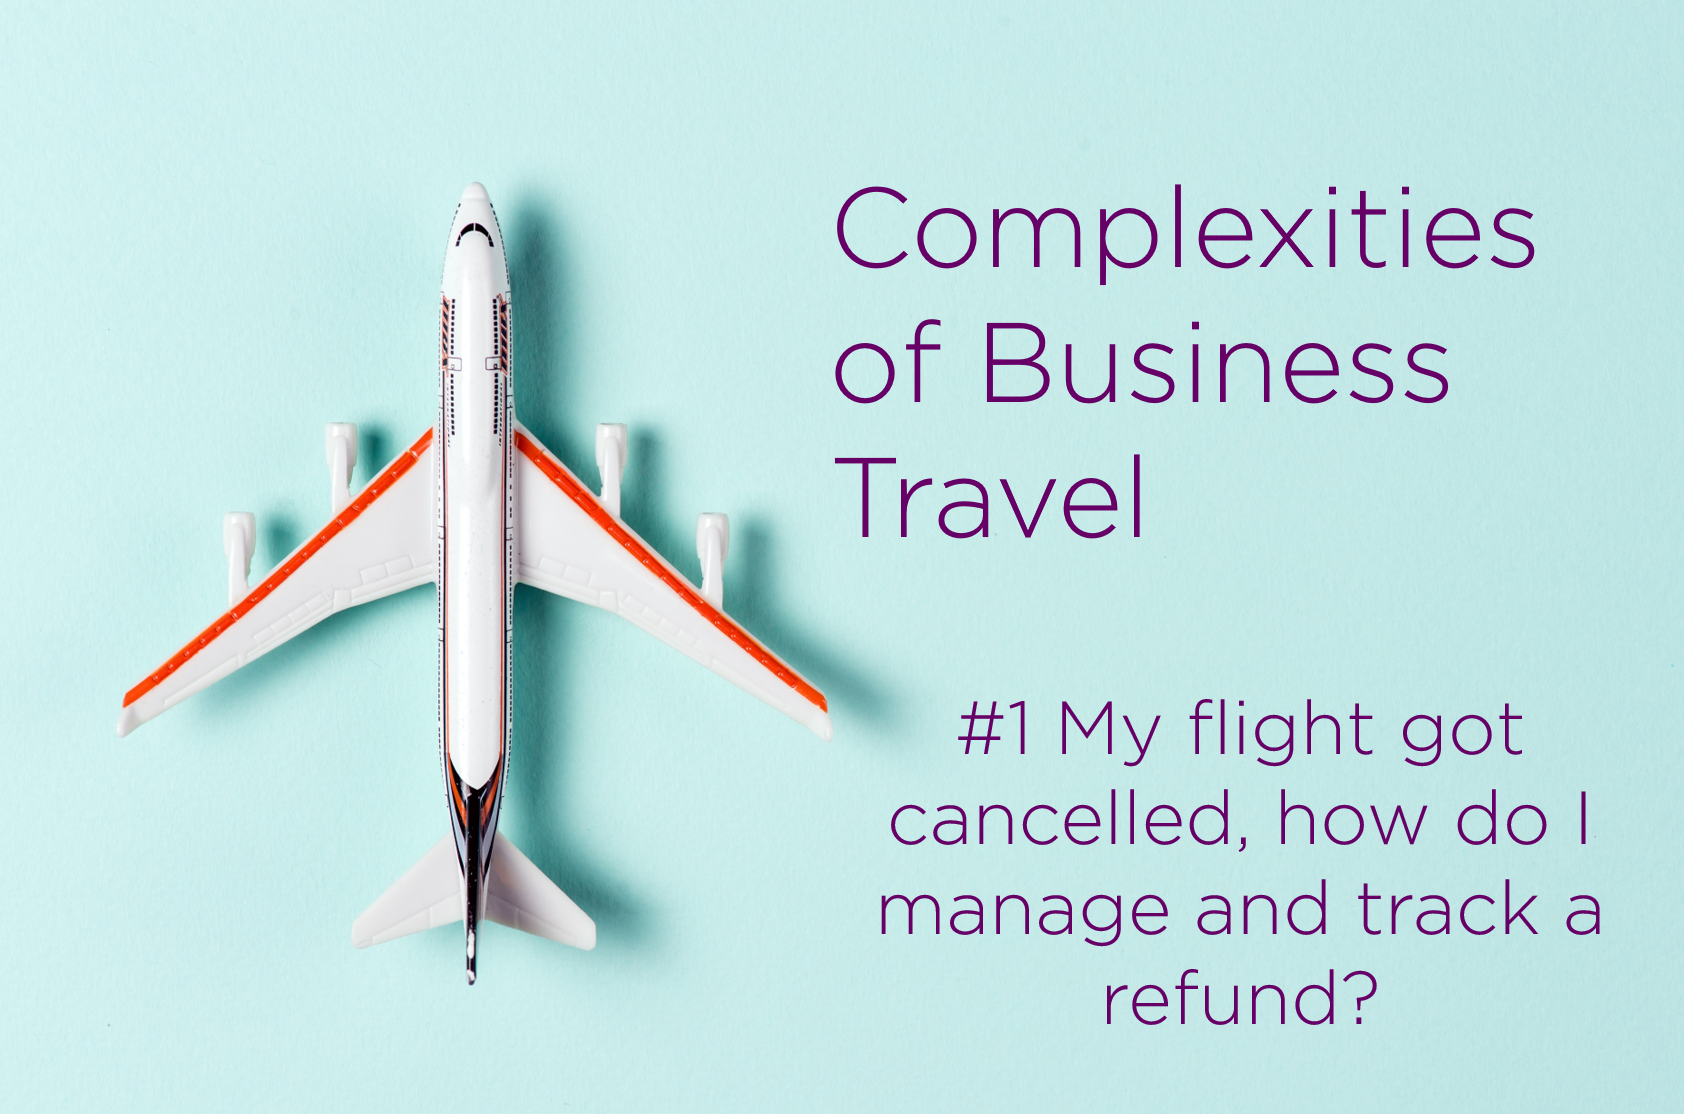 Complexities of Business Travel – Your Challenges #1 My Flight was cancelled, how do I manage and track a refund?